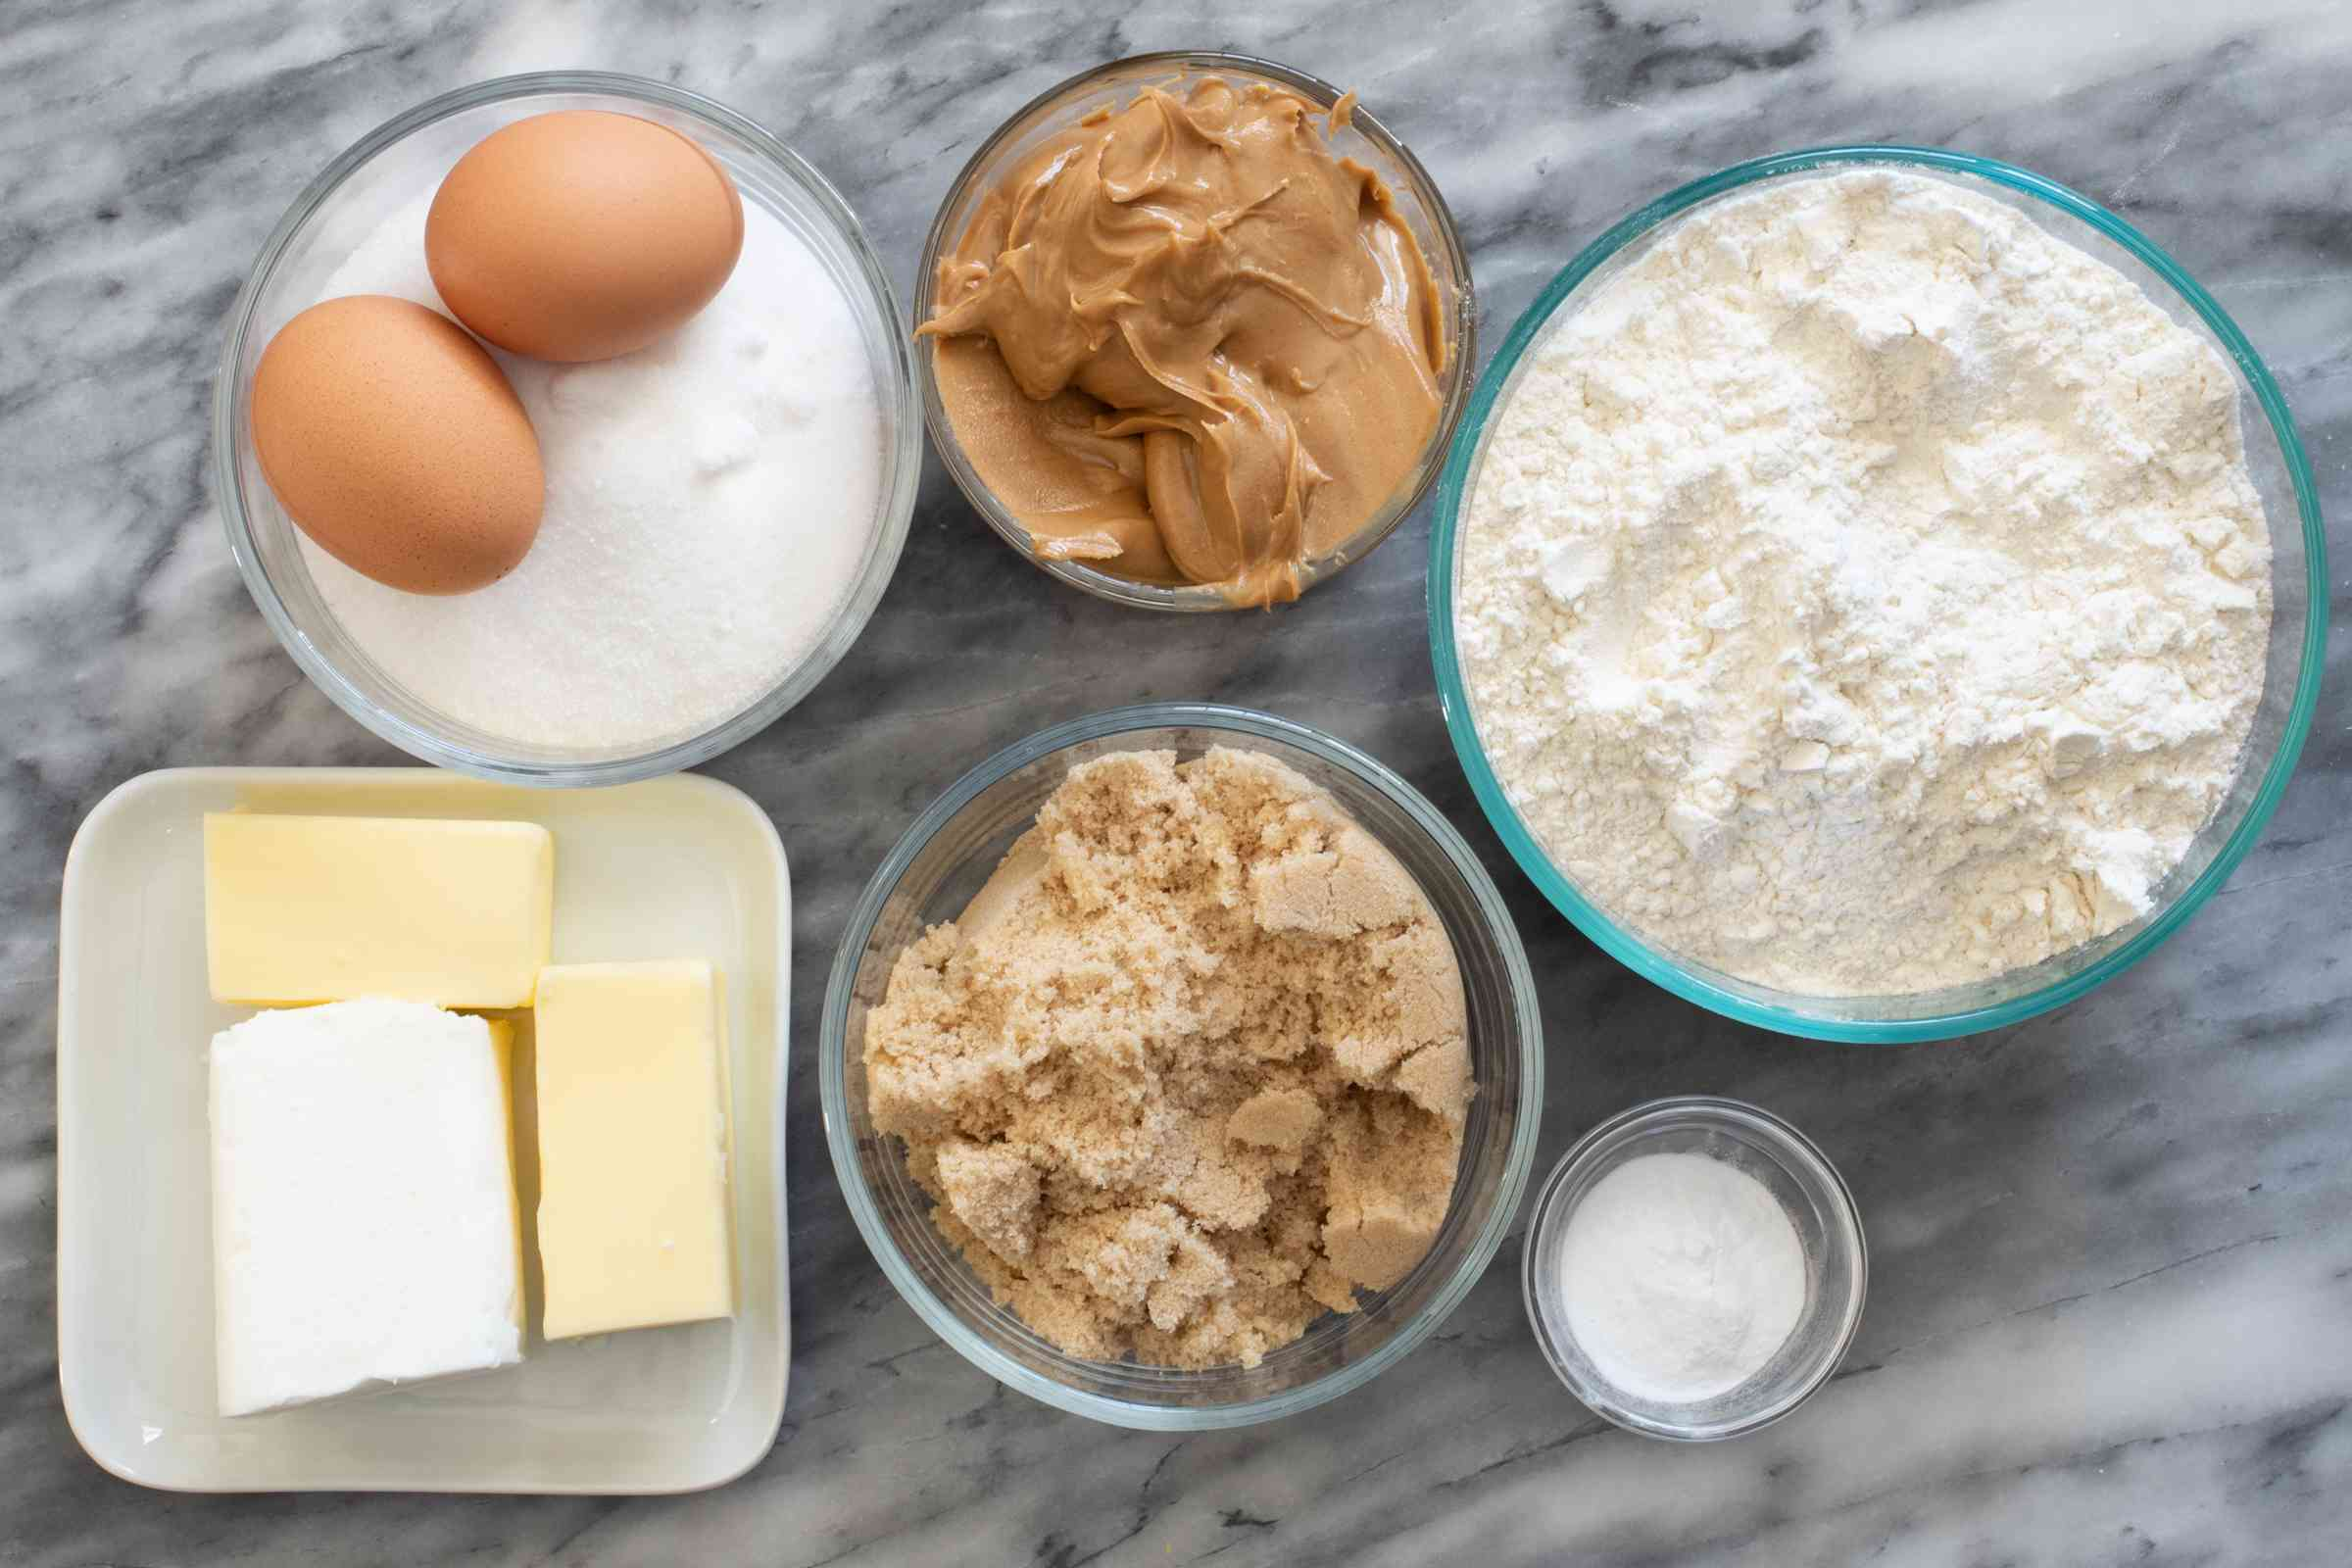 Ingredients for peanut butter refrigerator cookies.